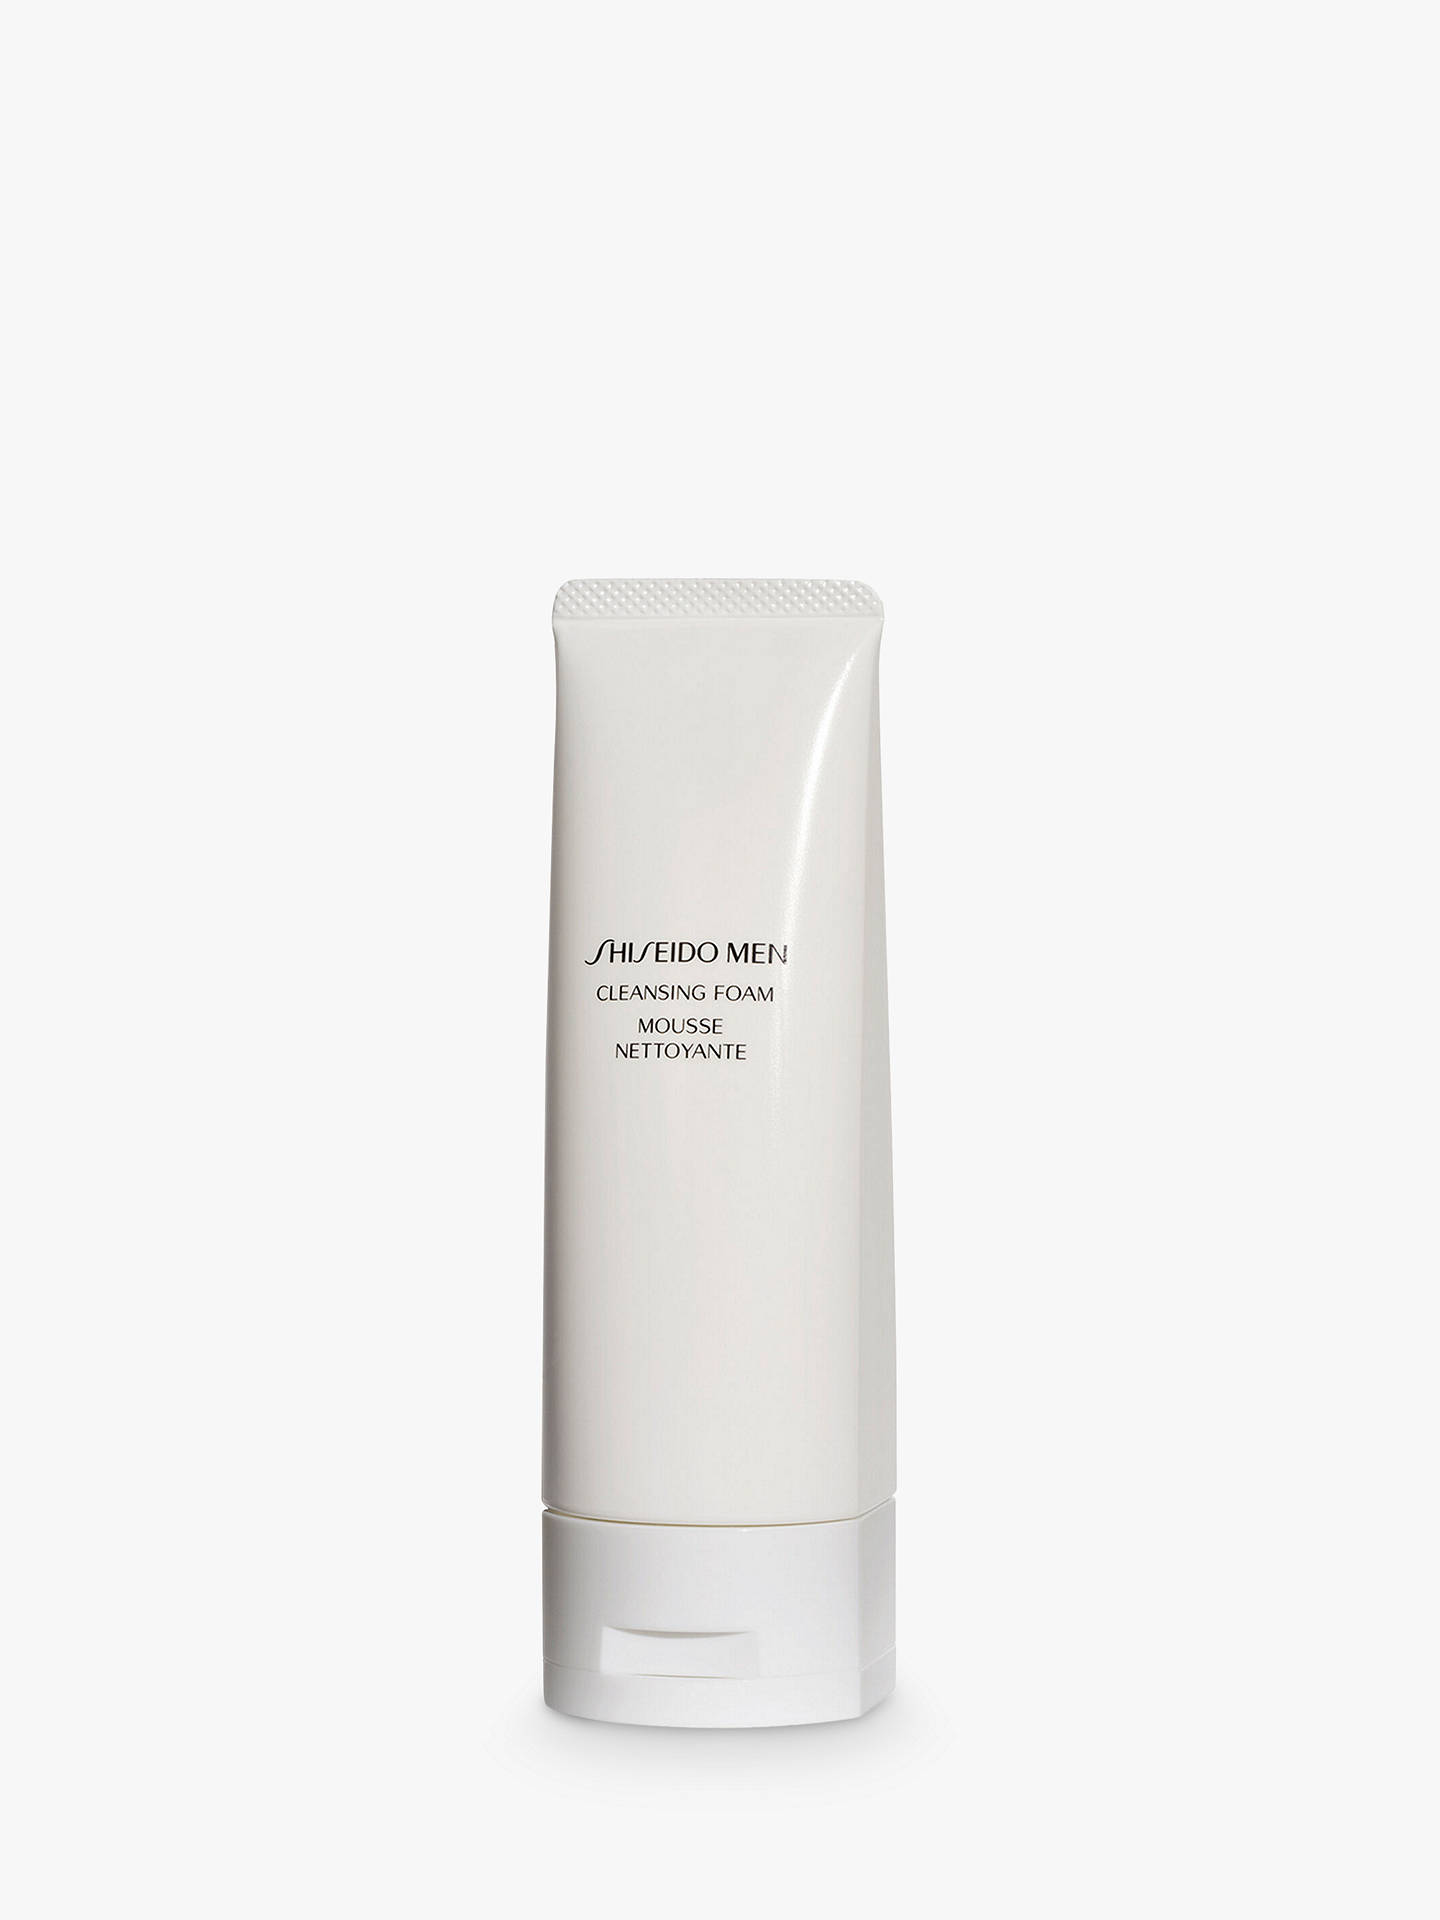 BuyShiseido Men Cleansing Foam, 125ml Online at johnlewis.com